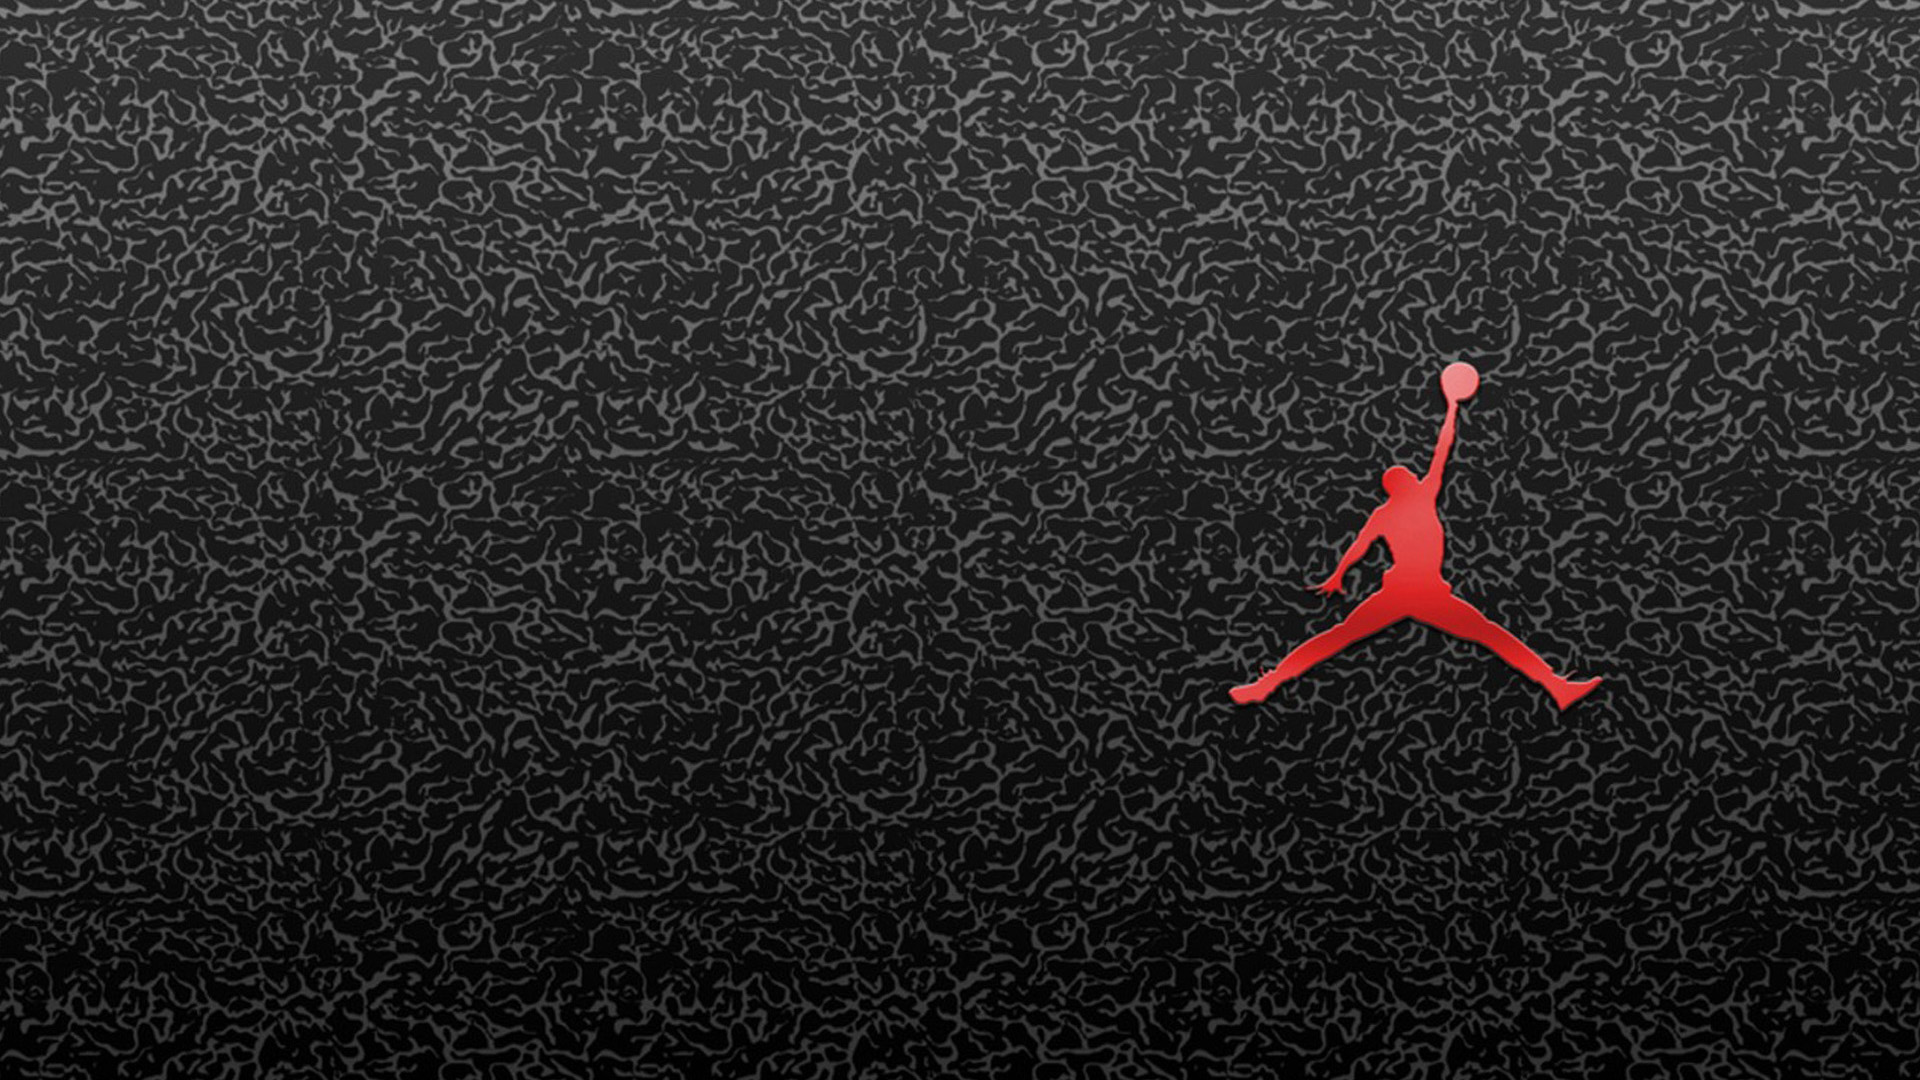 https://www.techgrapple.com/wp-content/uploads/2016/09/jordan-logo-black-image.jpg